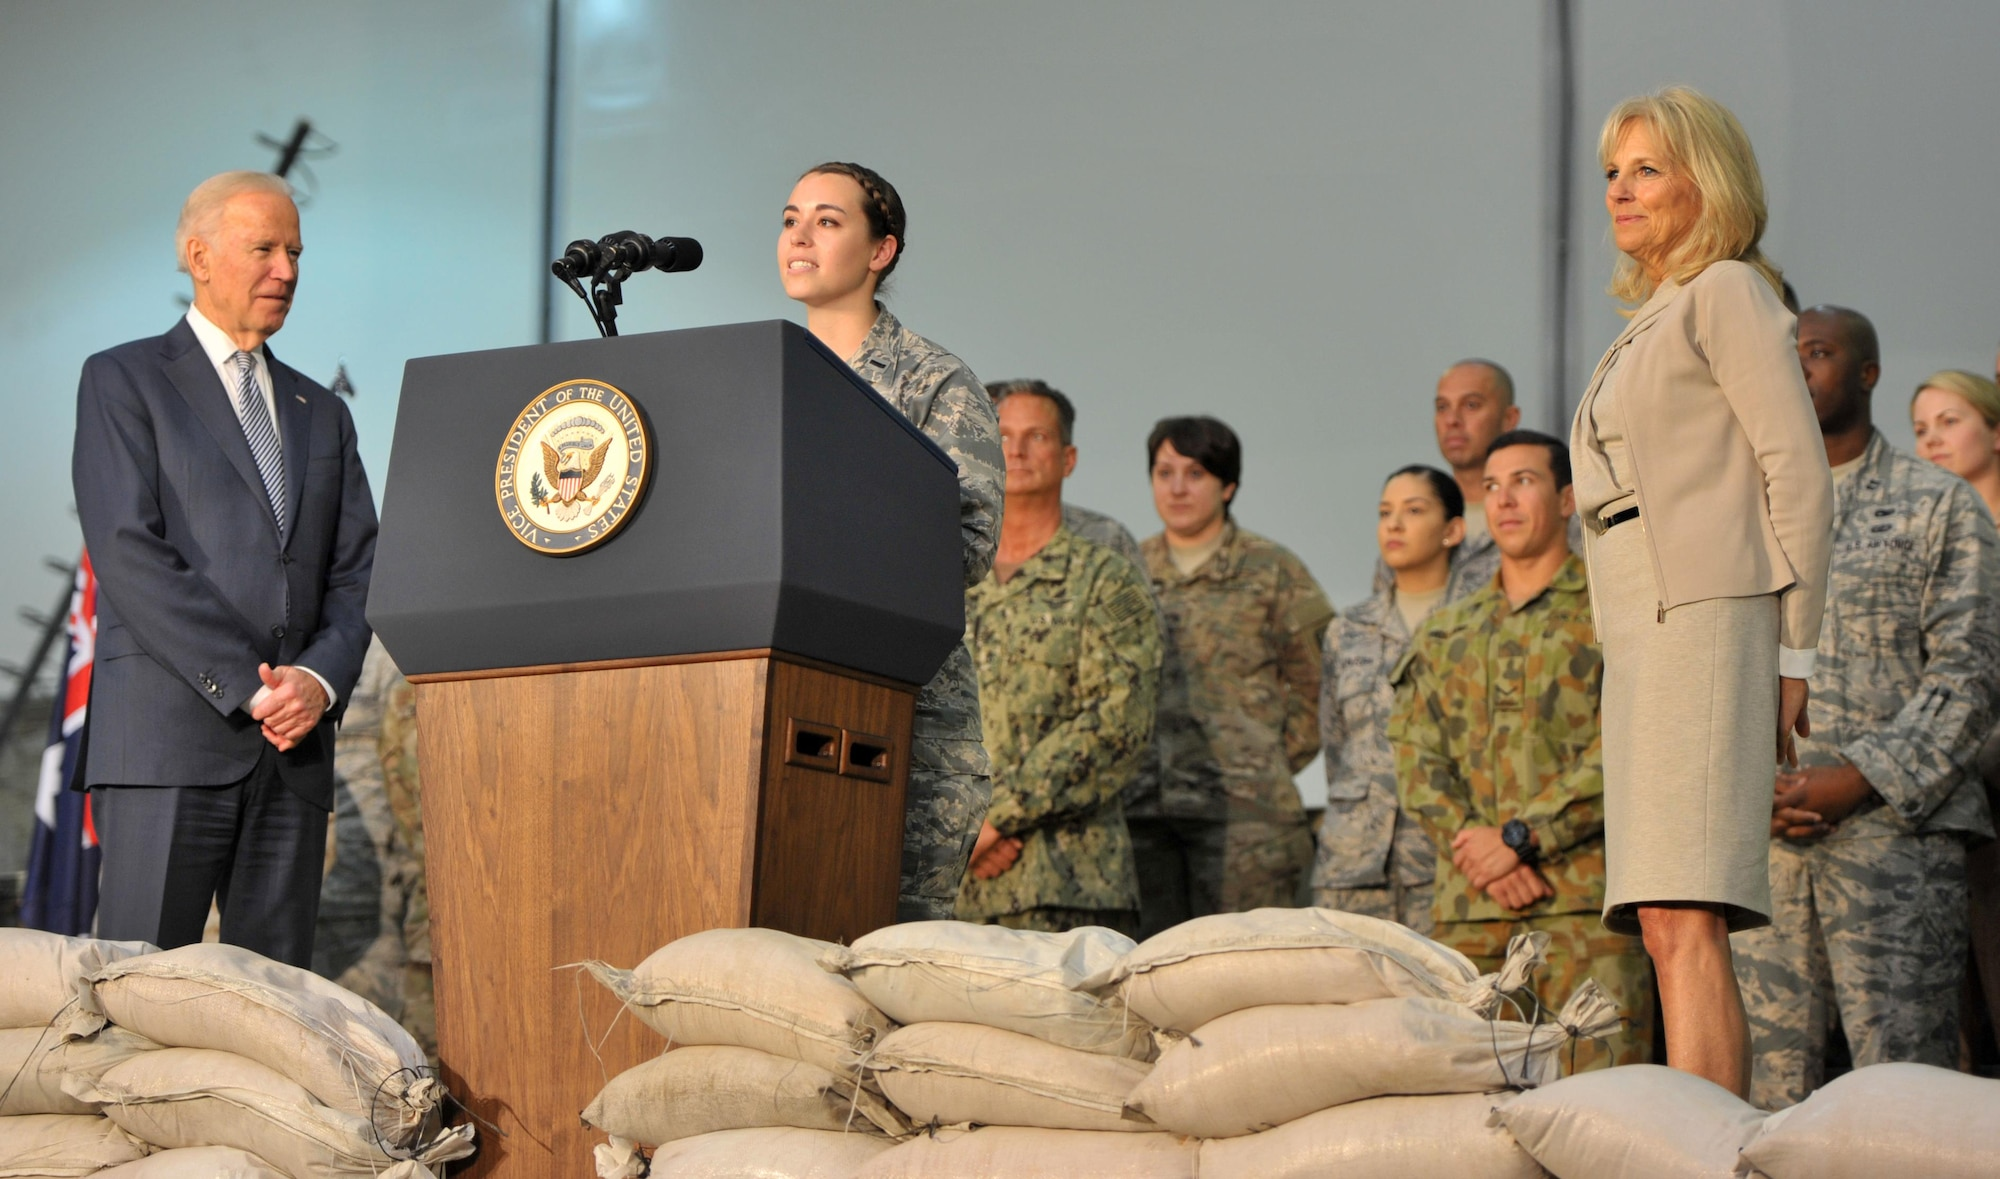 1st Lt. Karen, 380th Expeditionary Aircraft Maintenance Squadron officer in charge for the Sentry Aircraft Maintenance Unit, introduces Vice President Joe Biden to U.S. and coalition personnel during Biden's visit to an undisclosed location in Southwest Asia, March 7, 2016. Biden endorsed Karen's application to the Air Force Academy almost a decade ago before he accepted his current position as Vice President of the United States. (U.S. Air Force photo by Staff Sgt. Kentavist P. Brackin/released)